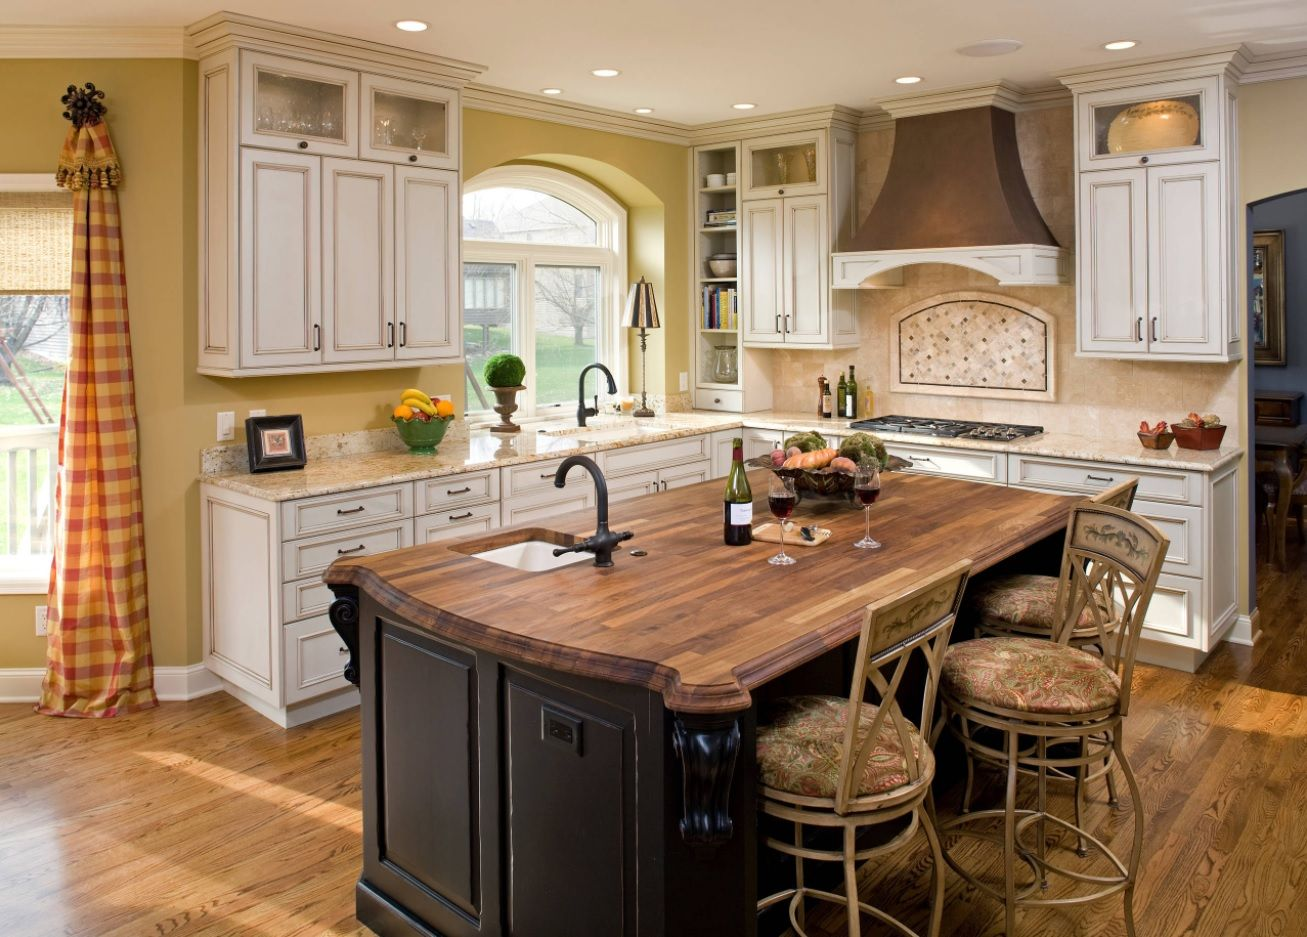 Butcher Block Countertop in Modern Kitchen Interior. Cool implementation of Provence style standards in the cottage